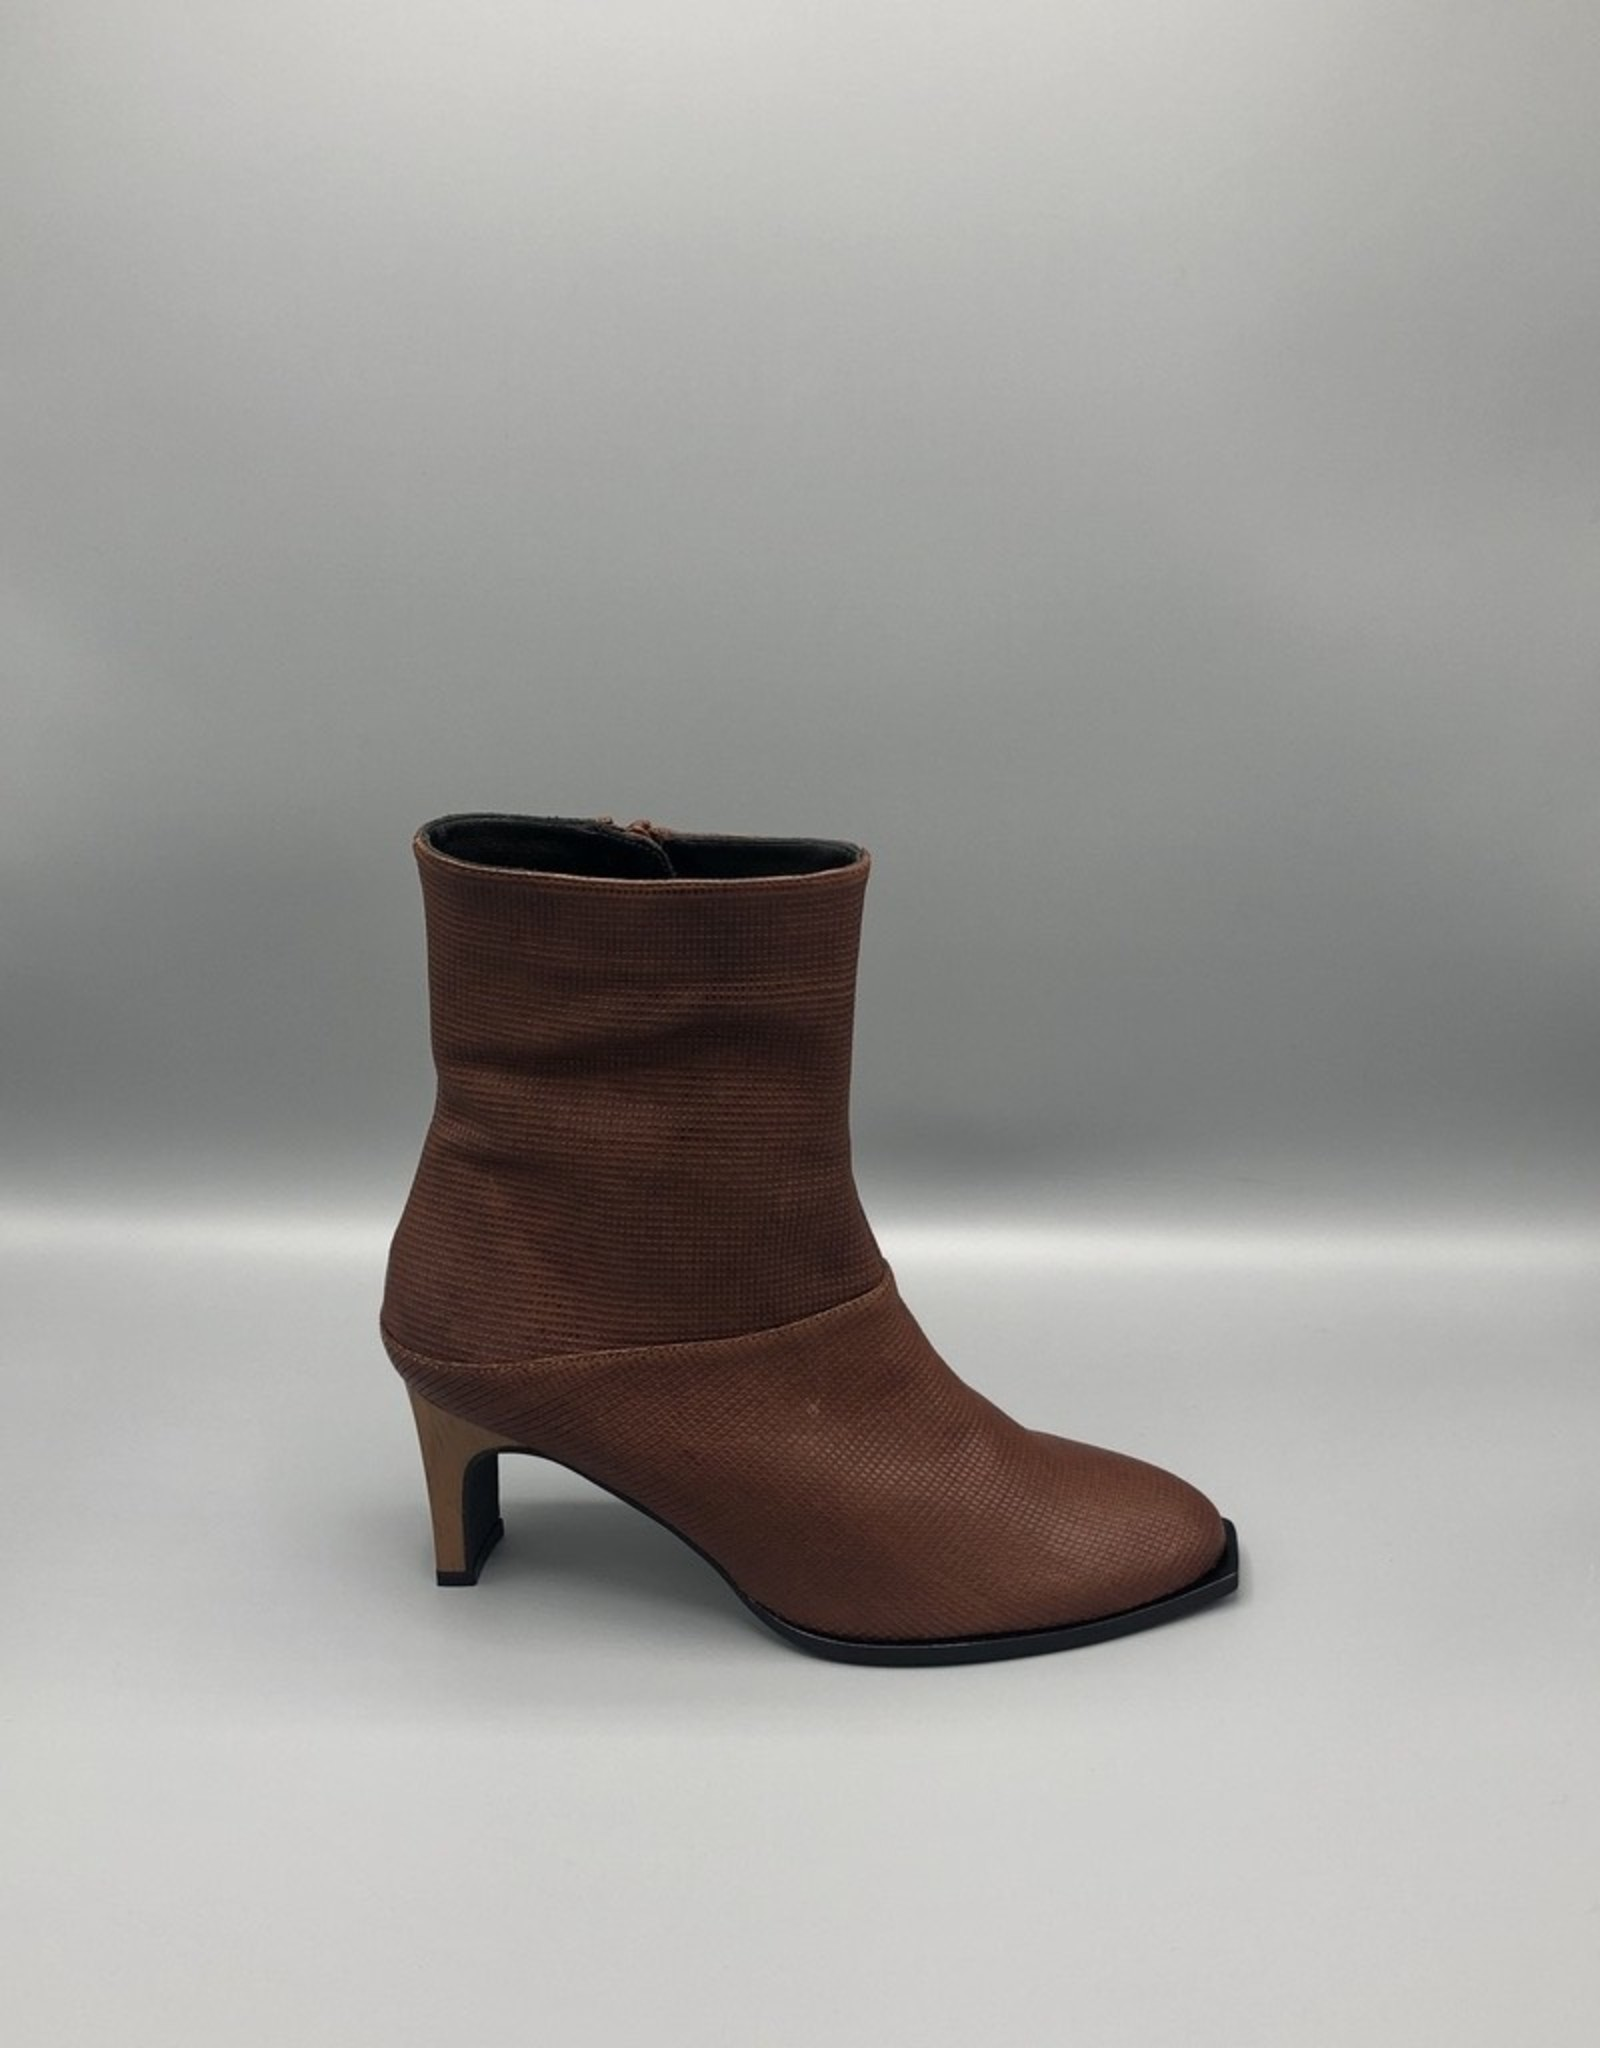 Thiron Thiron Wood Heel Side Zip High Leather Ankle Boot